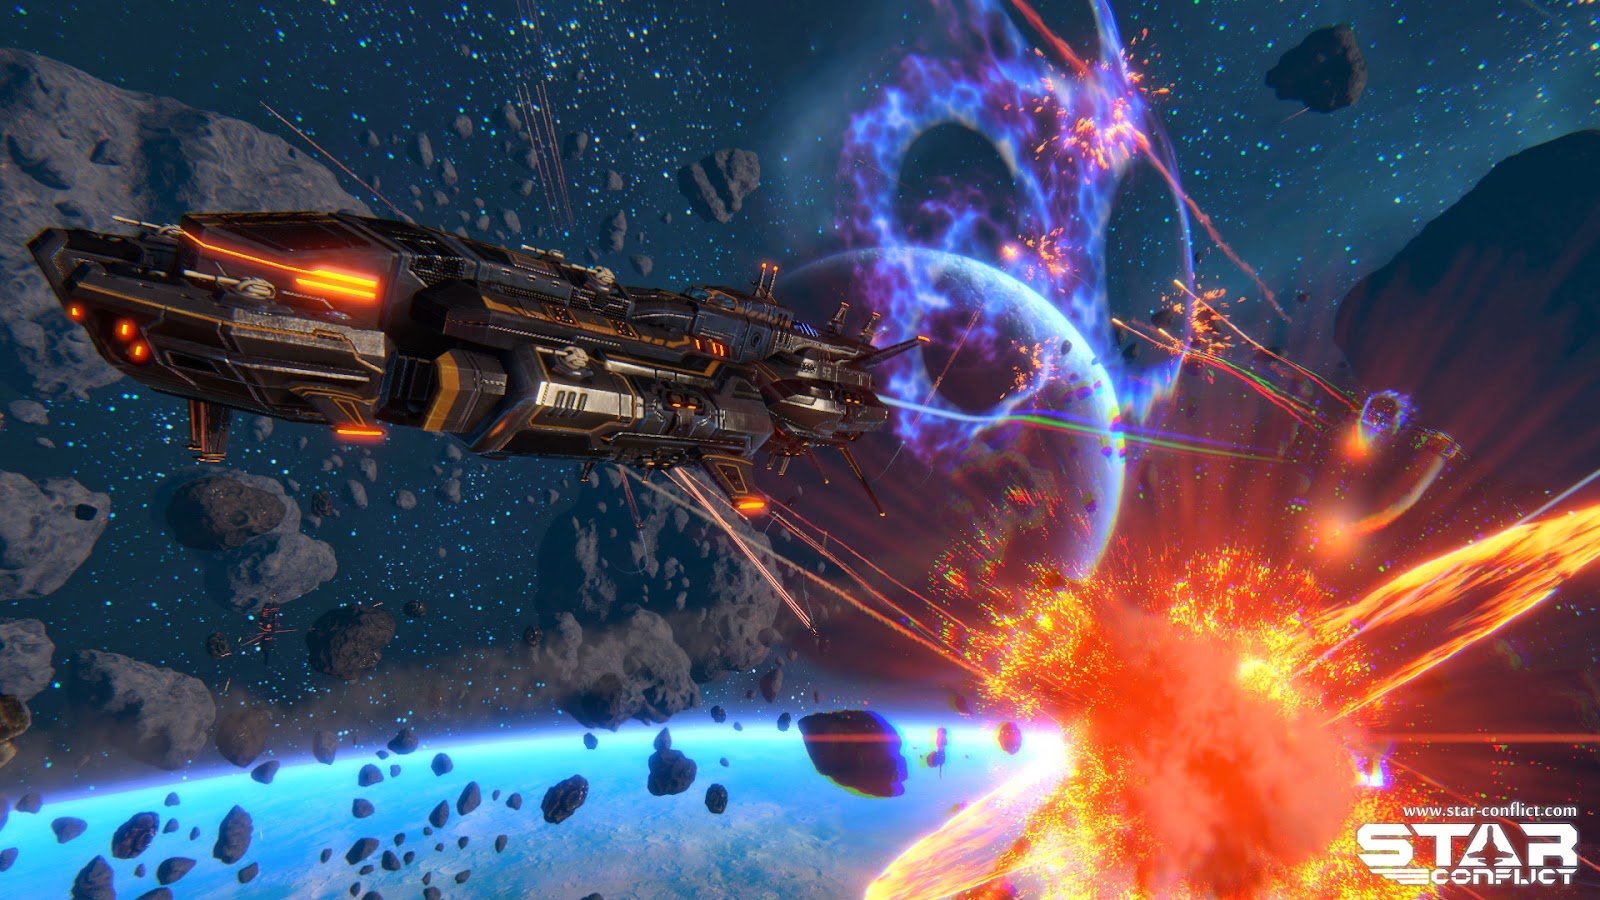 Star Conflict is now available on Linux